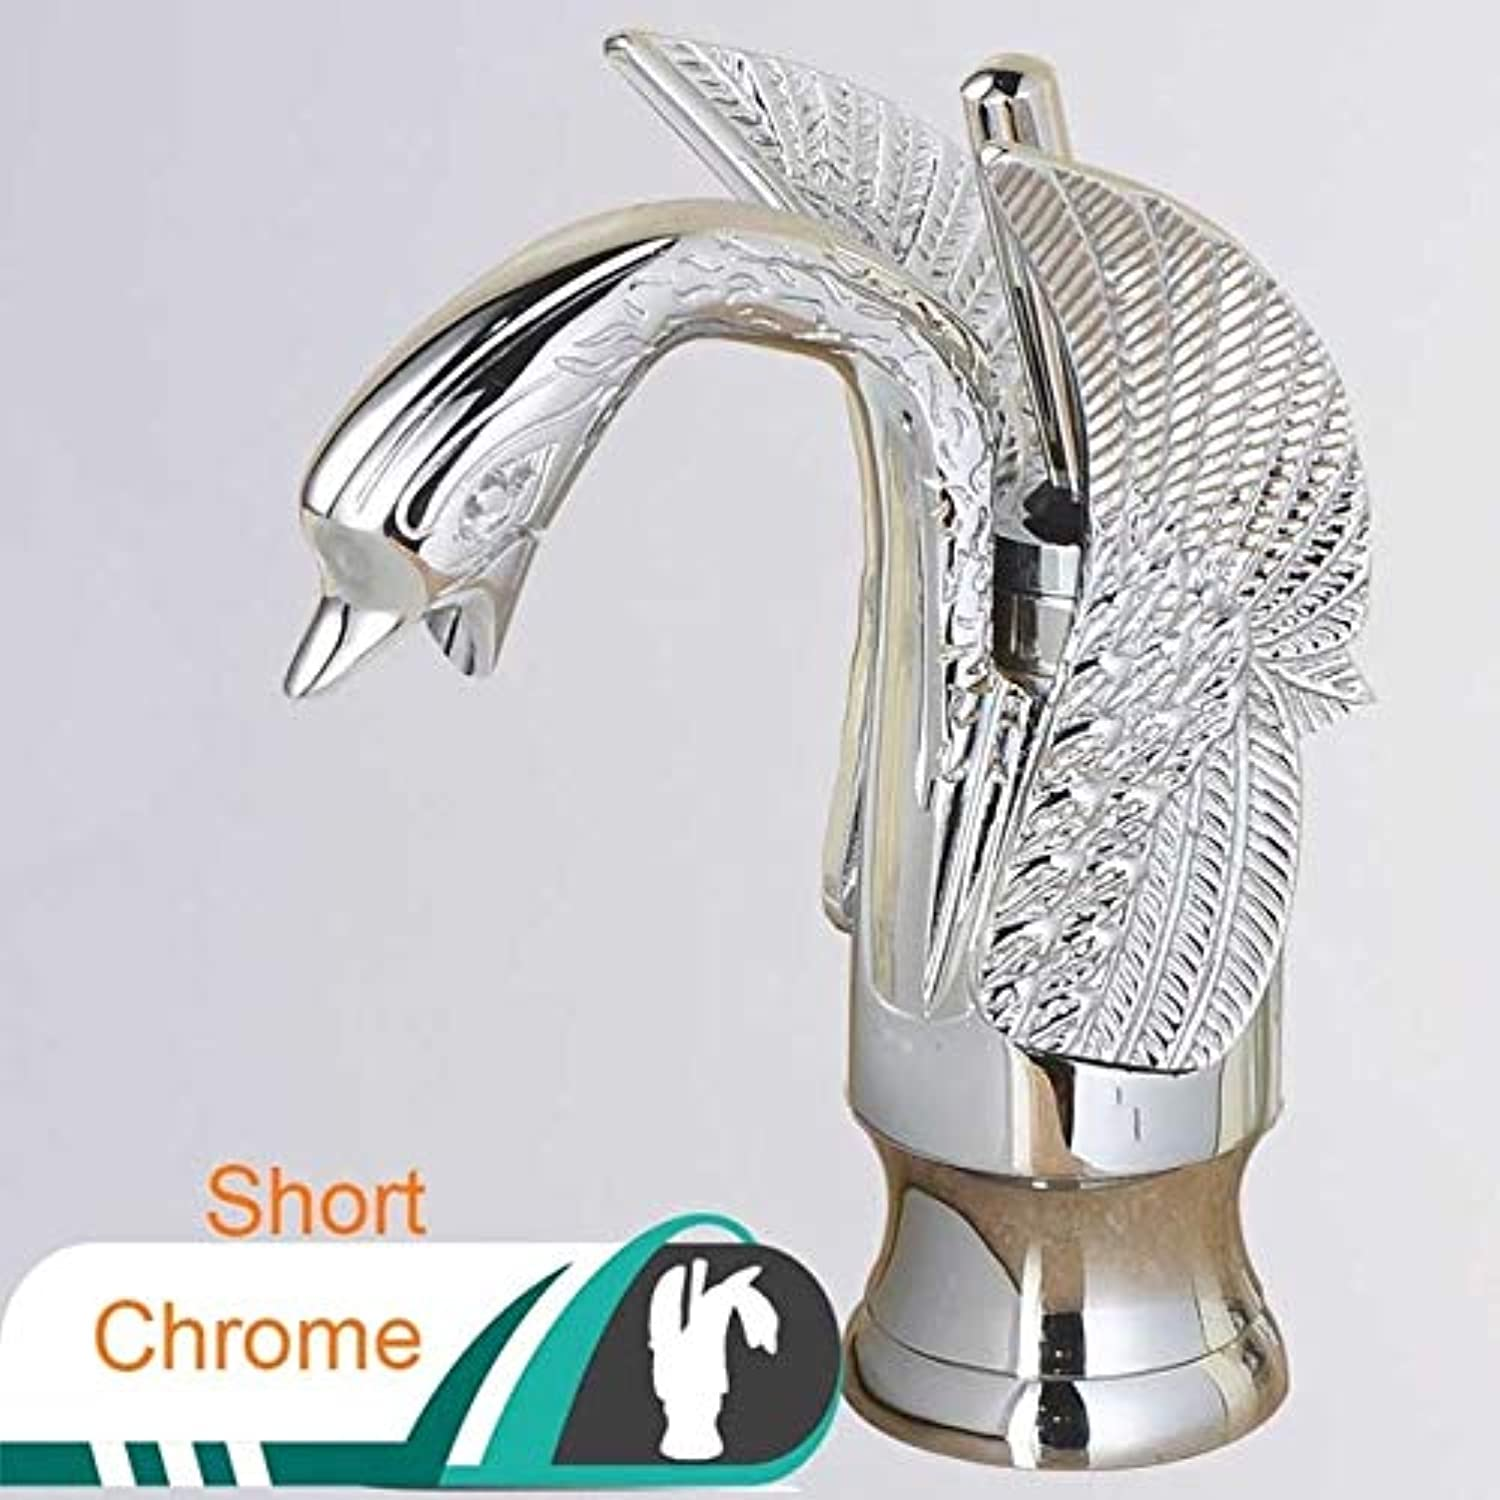 U-Enjoy Chandelier Basin Faucet Swan Single Black Top Quality Bronze Handle Bathroom Mixer Tap Mounted Brass Hot Deck Cold Water Tap Chrome Mixer Tap Free Shipping [Short Chrome]